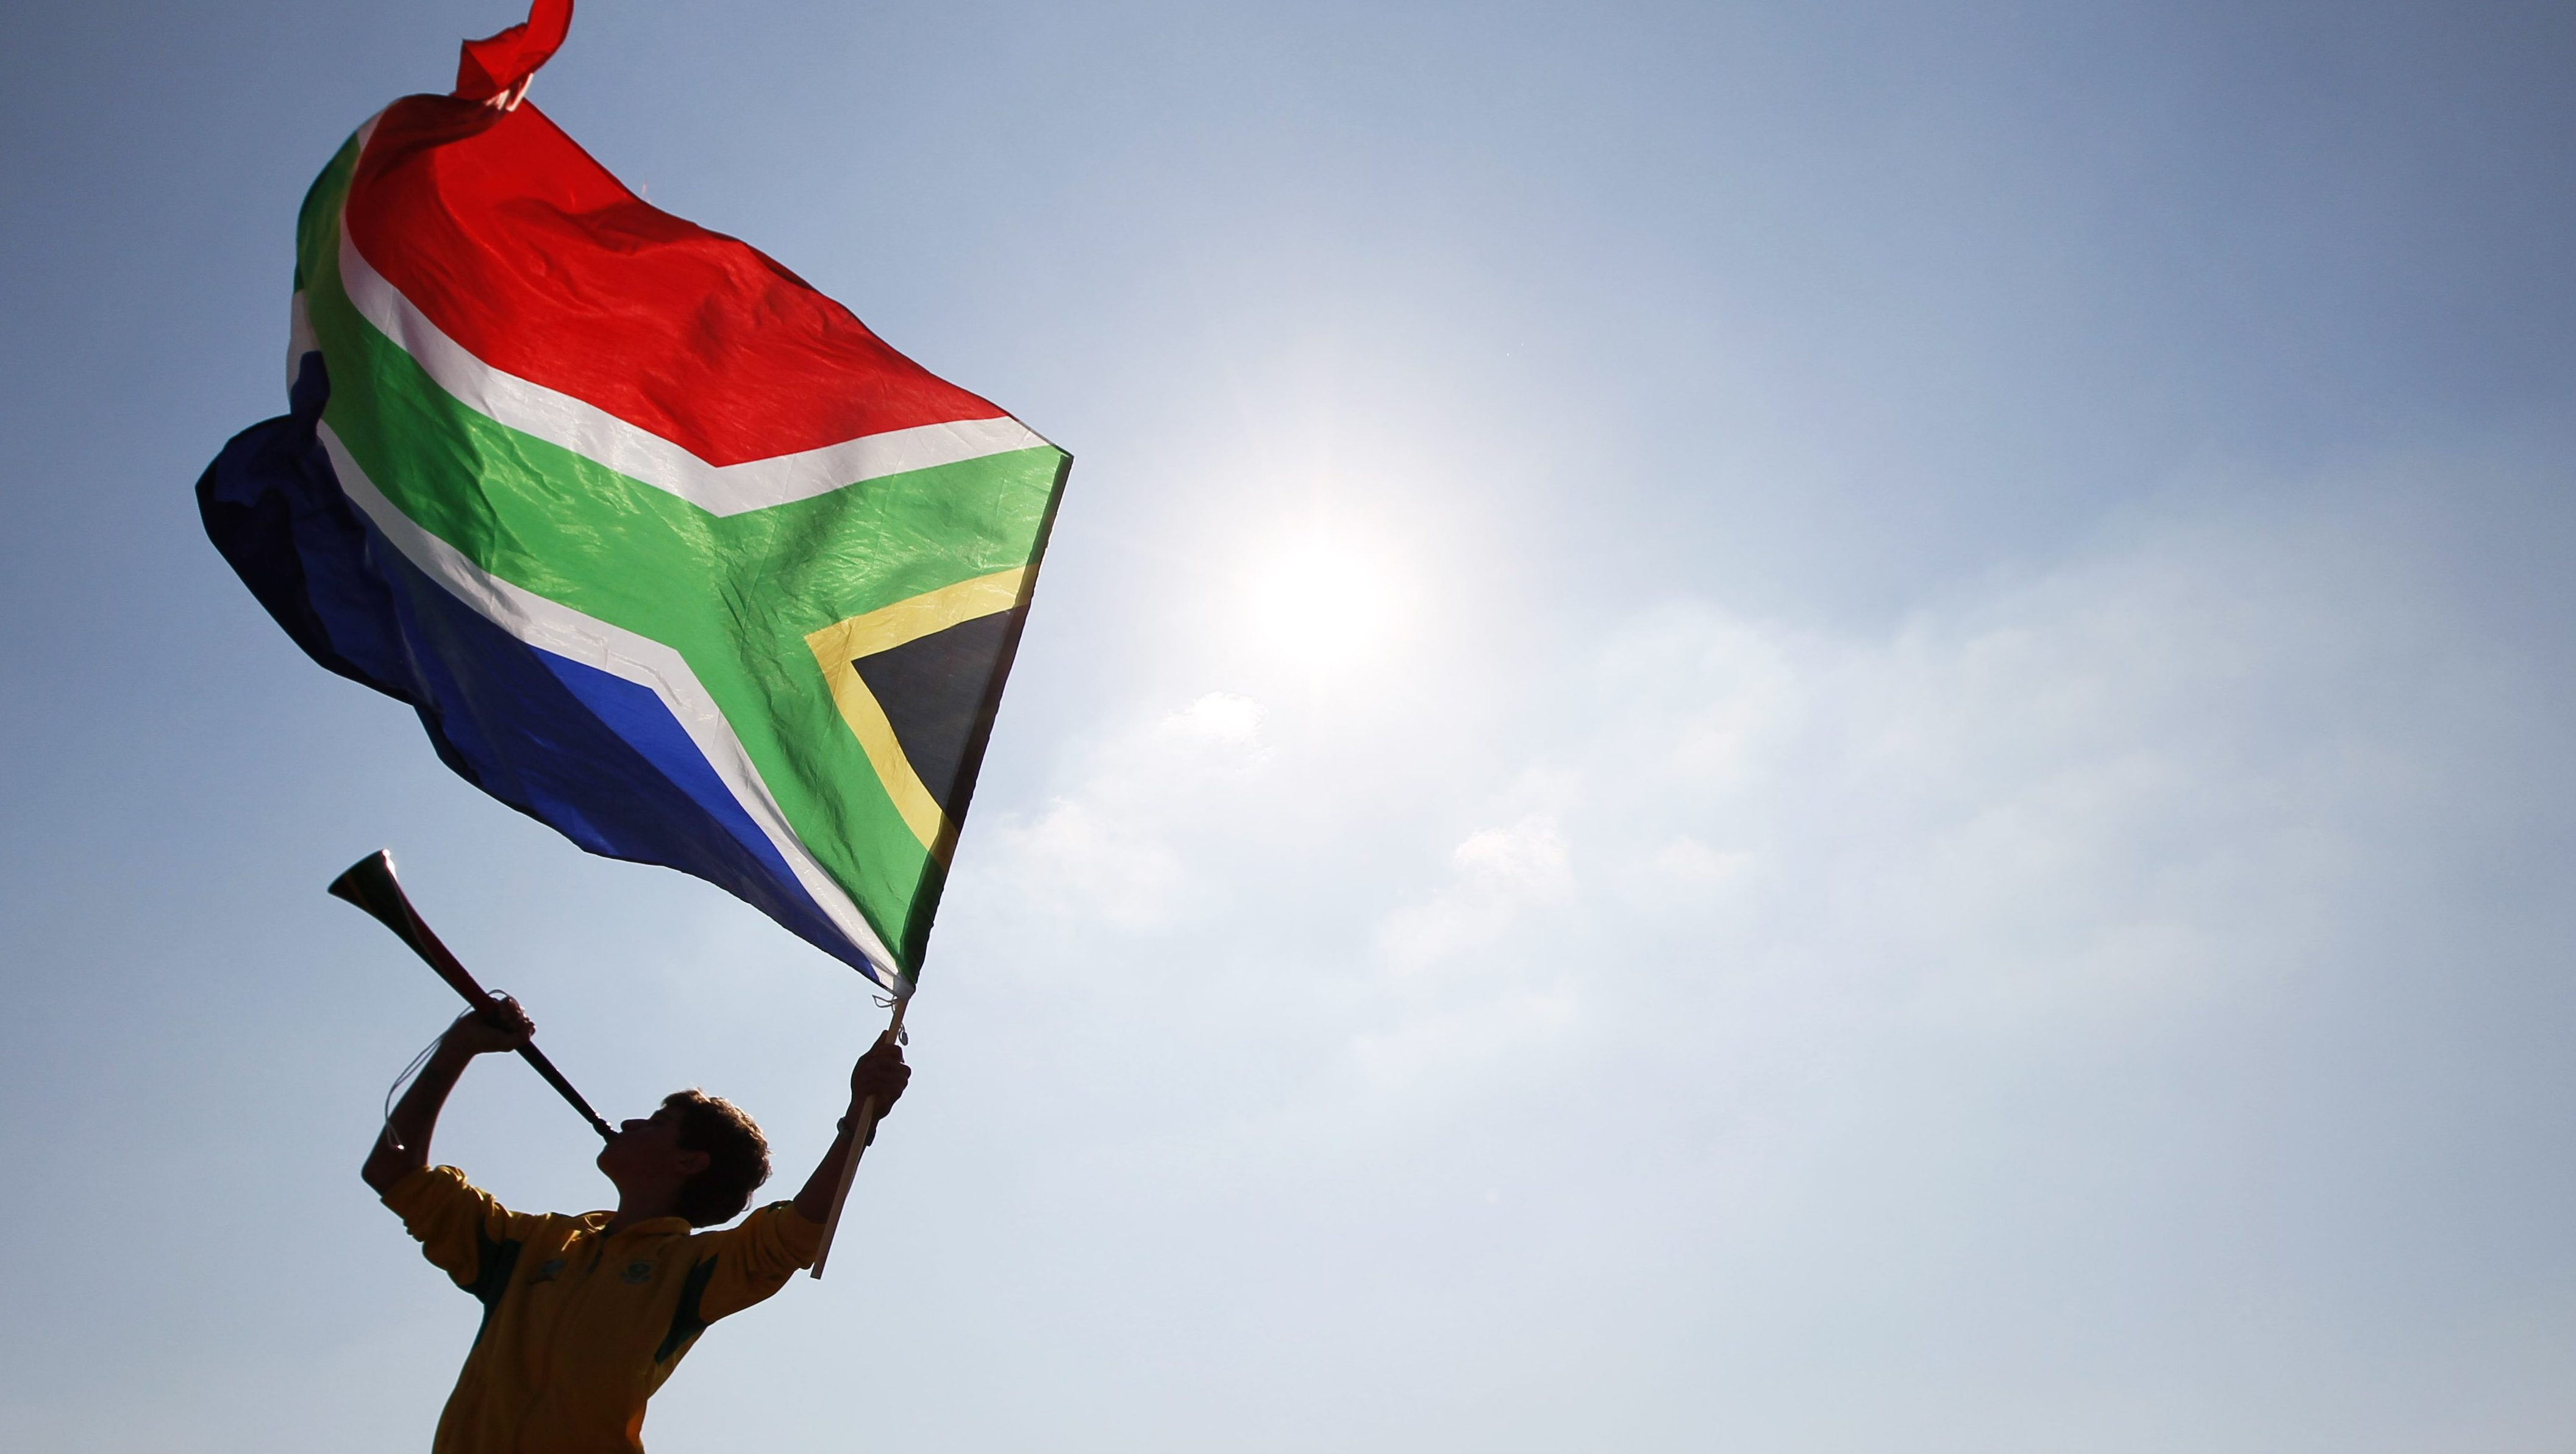 Lead image Frederick Brownell, designer of South African flag has died